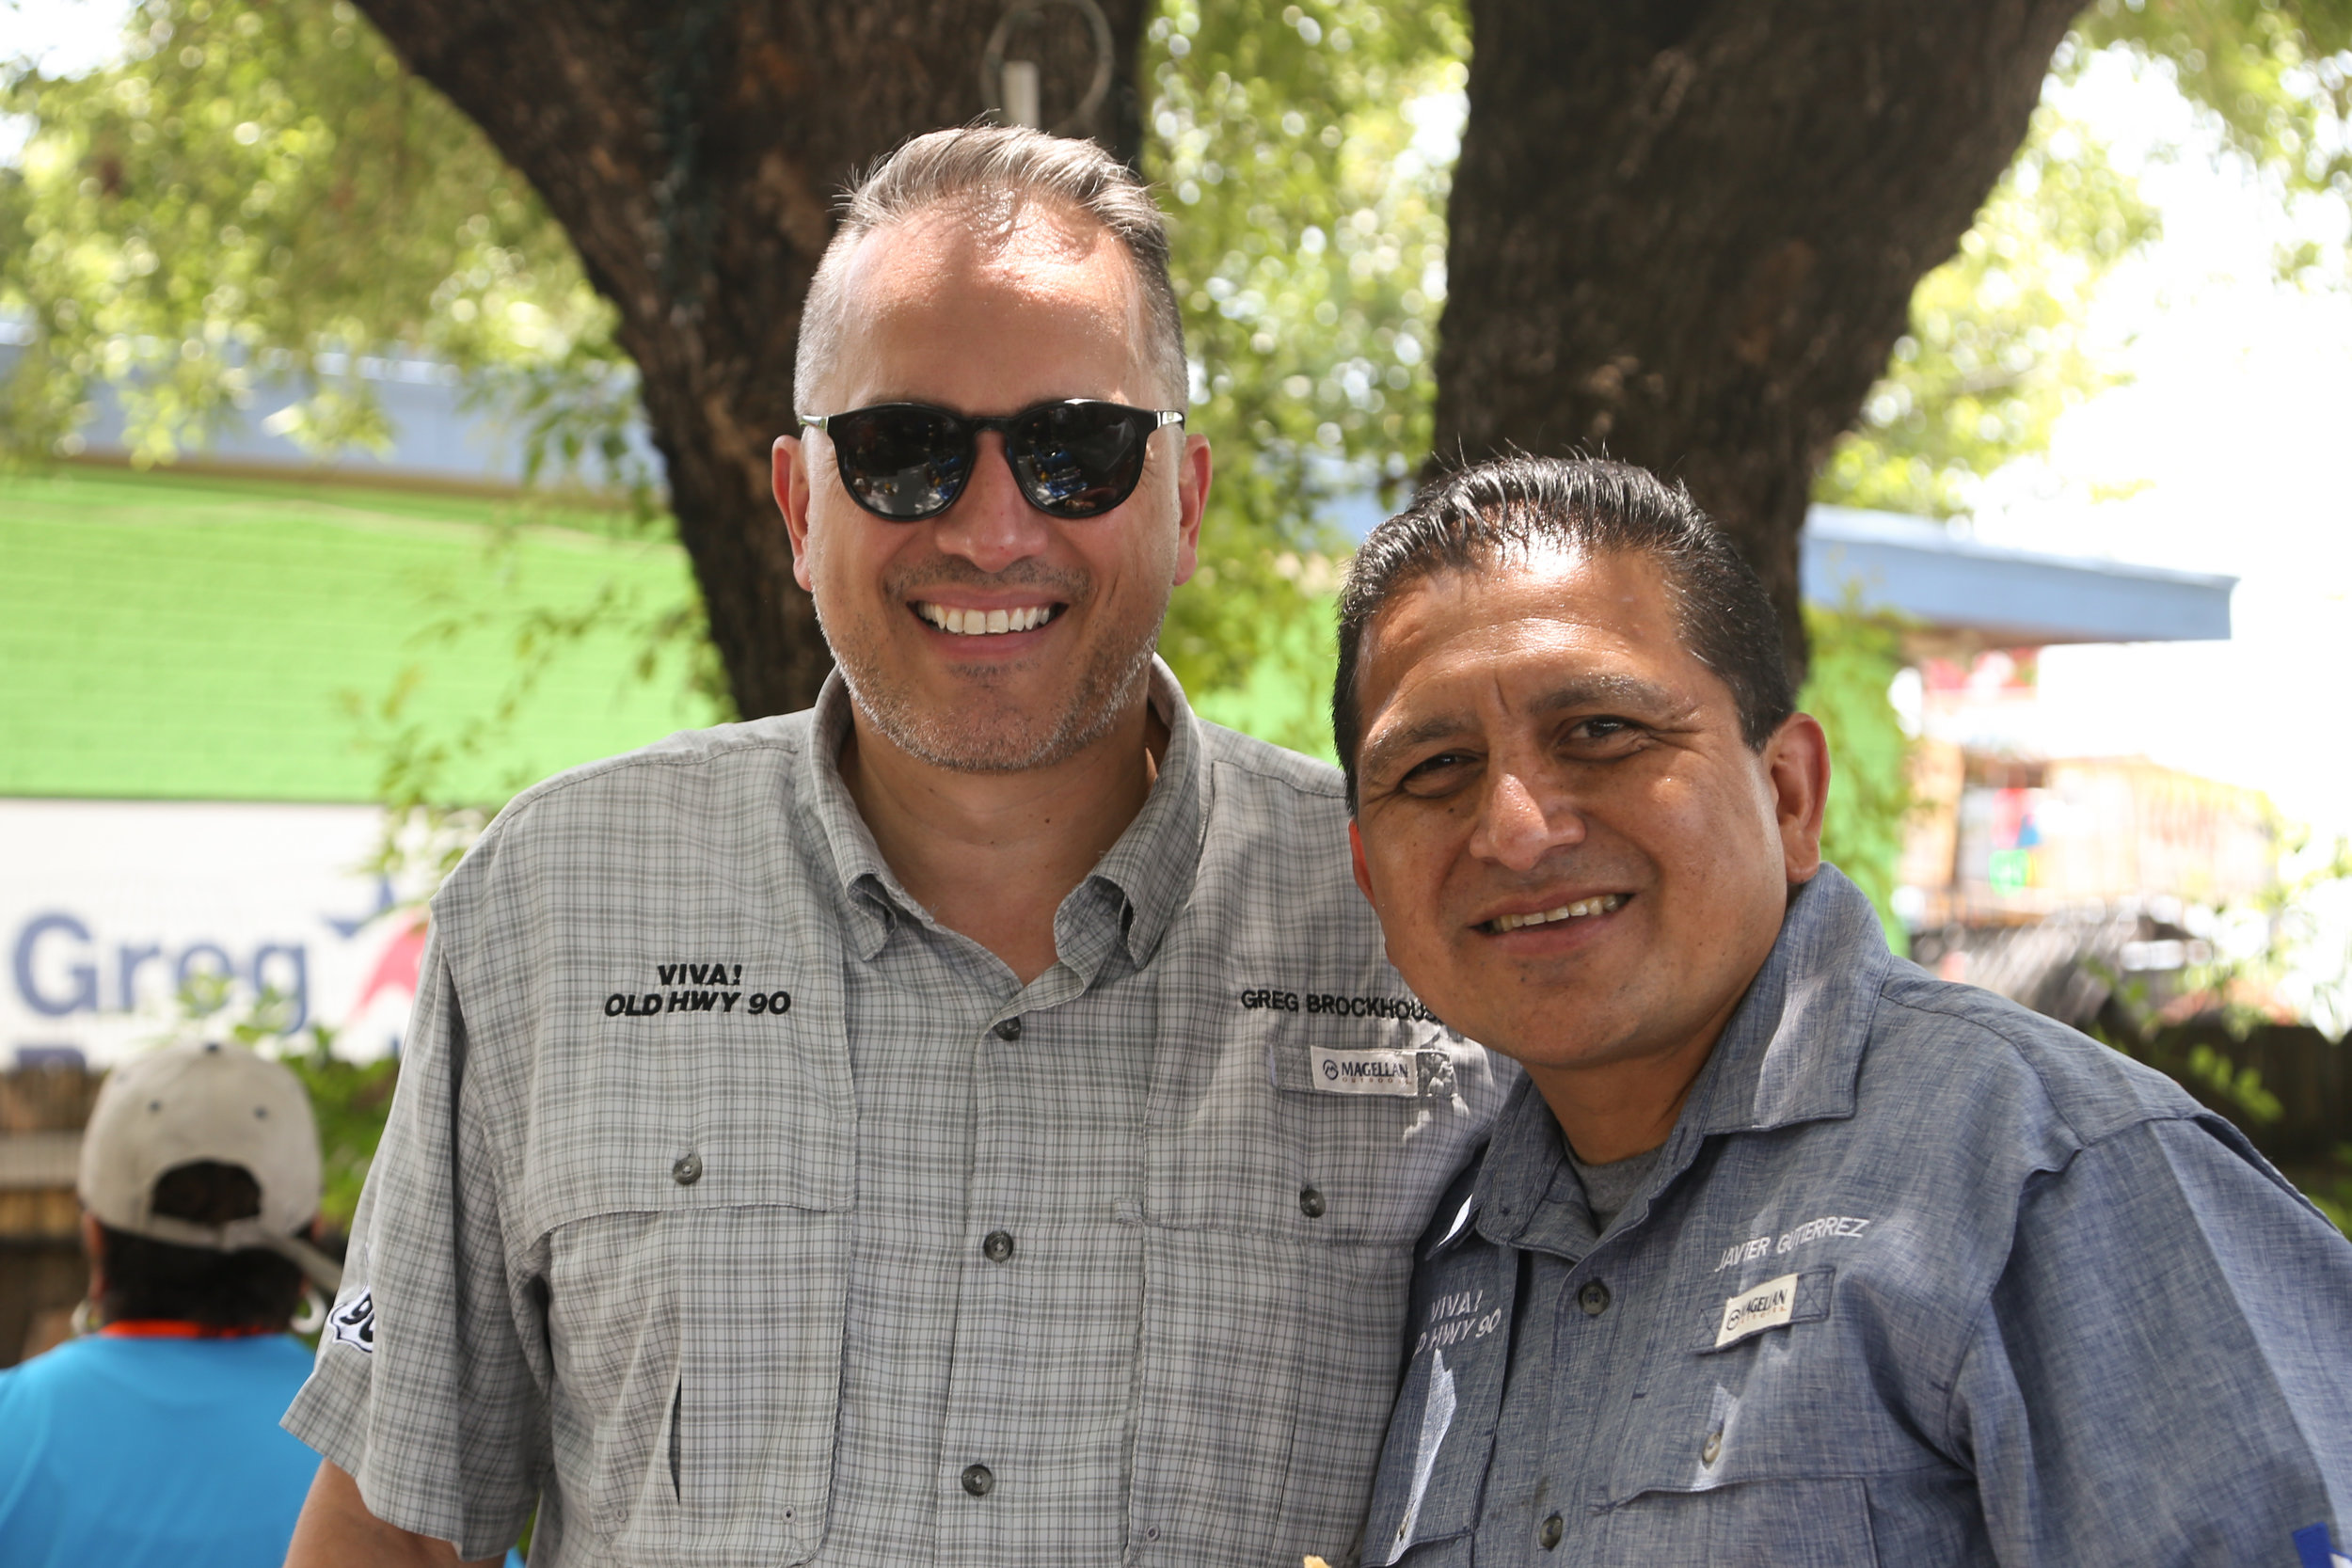 Greg Brockhouse poses with Javier Gutierrez at the Thank You Party. (Photo by  Jonathan Guajardo .)